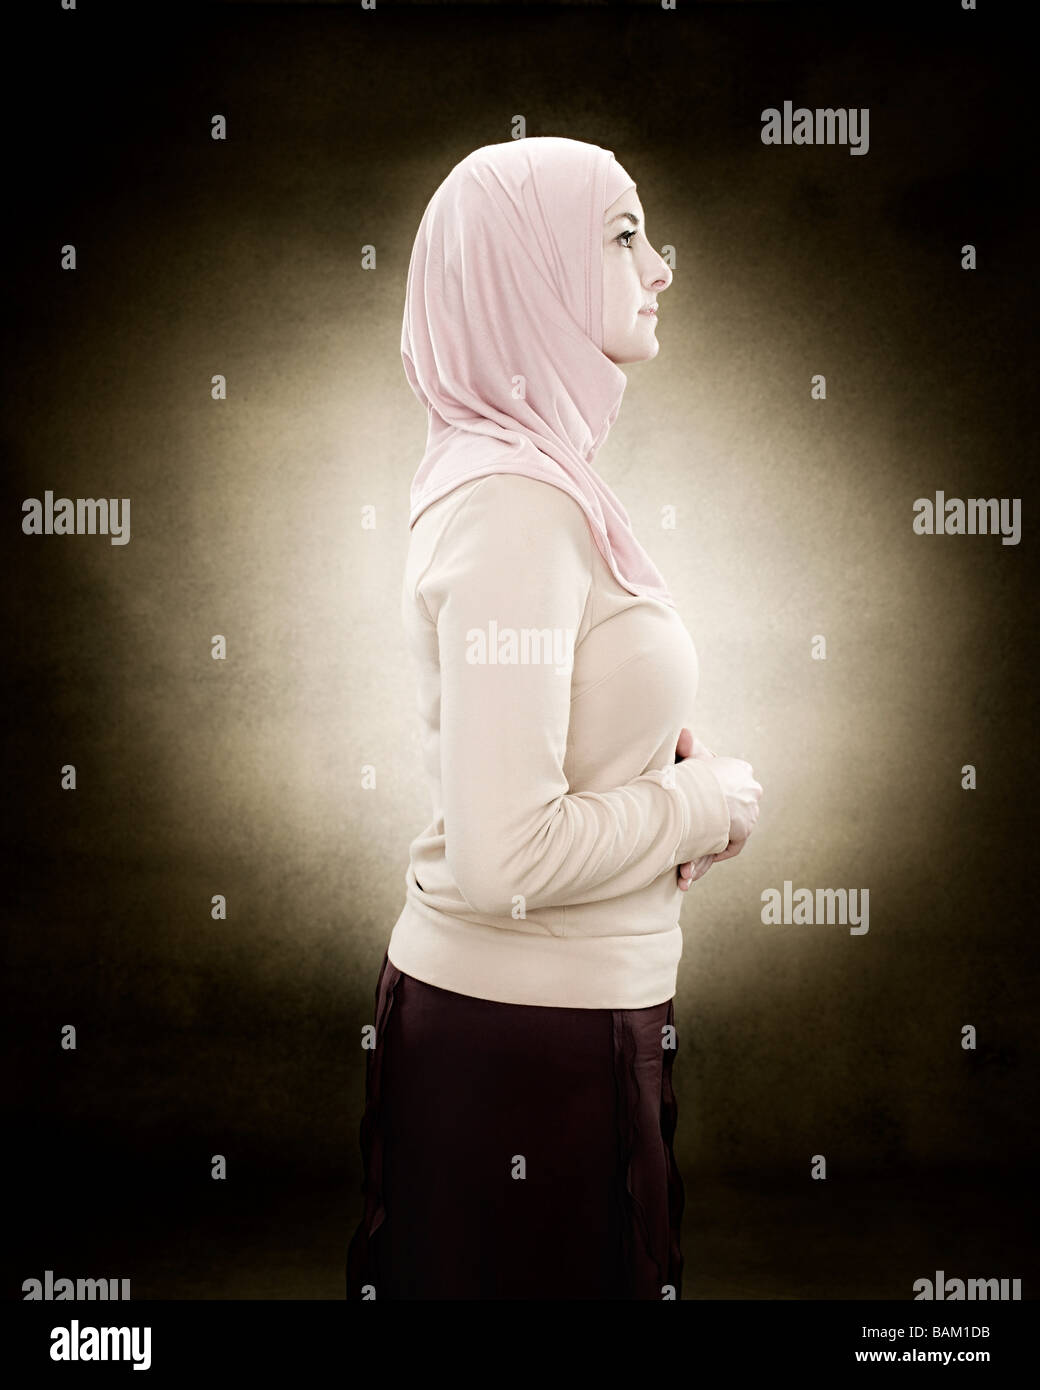 Profile of a young muslim woman - Stock Image